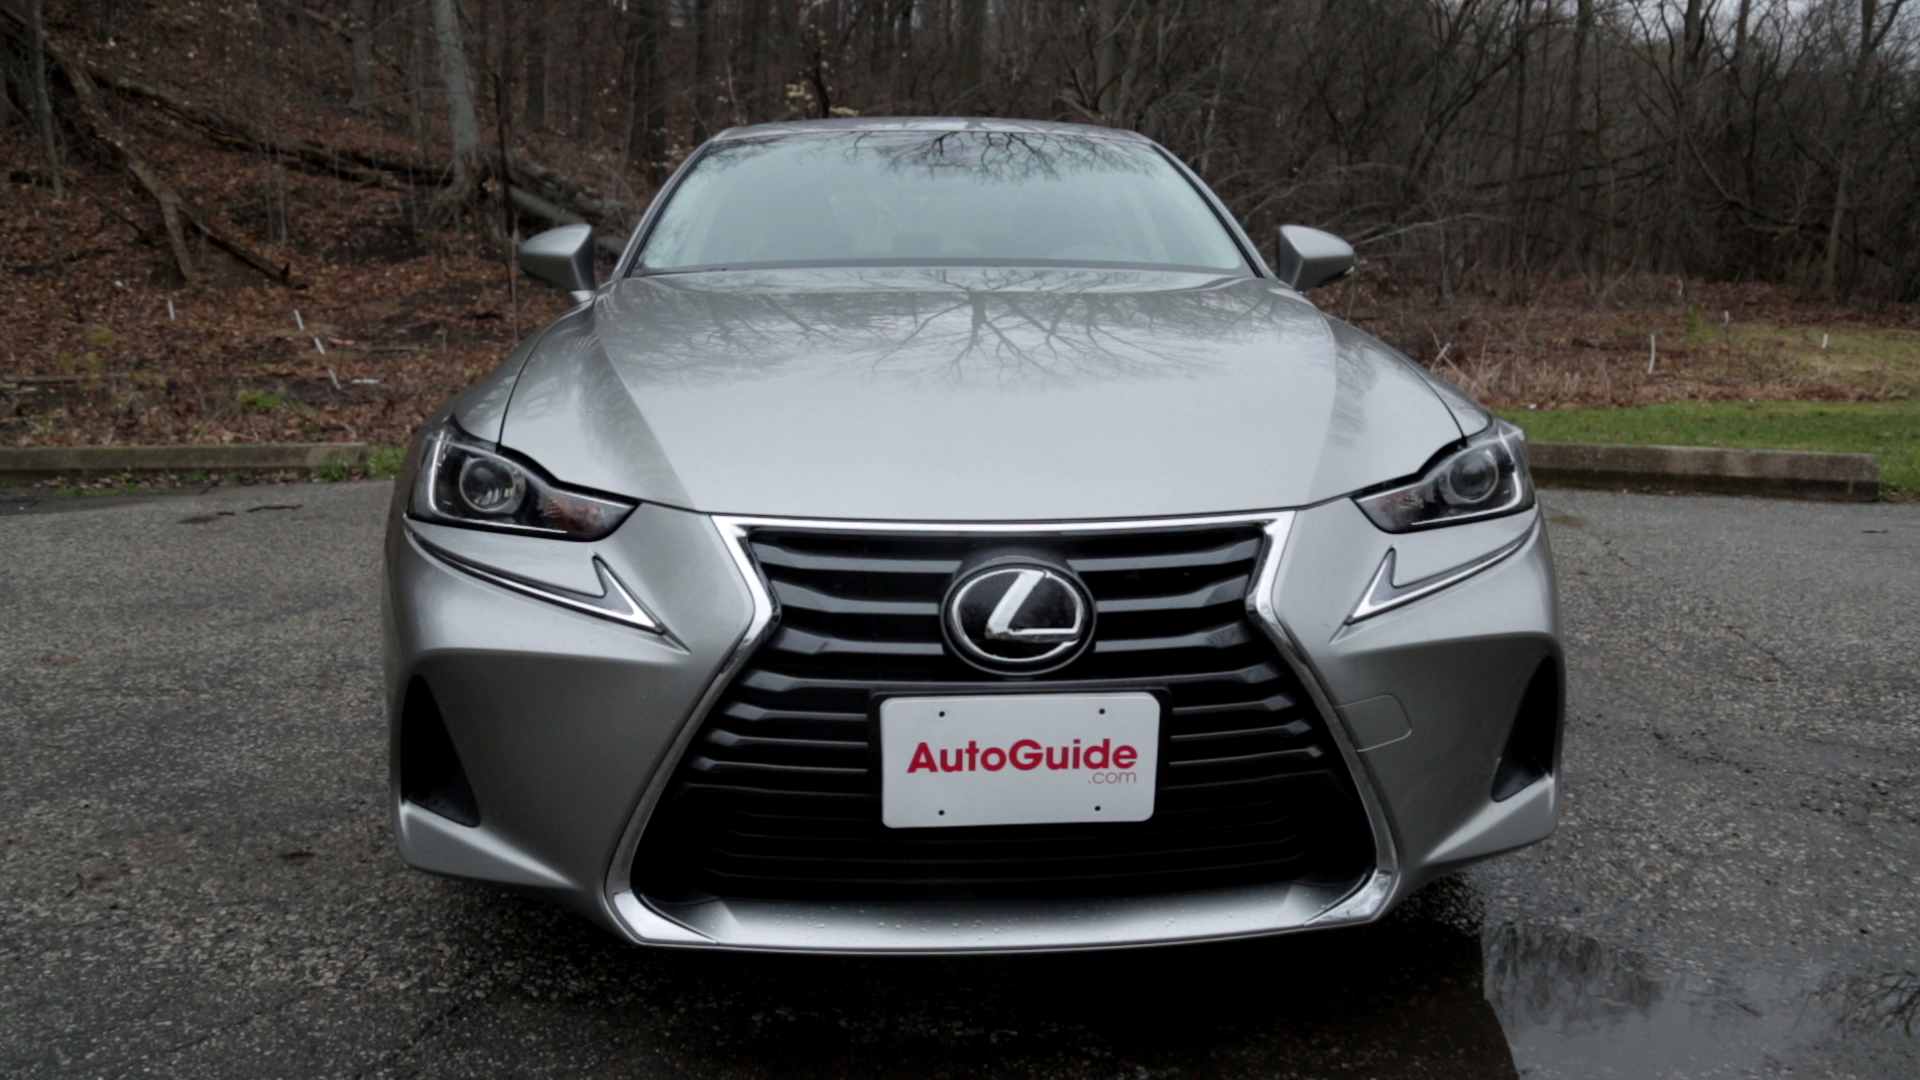 2017 Lexus IS 300 AWD Review